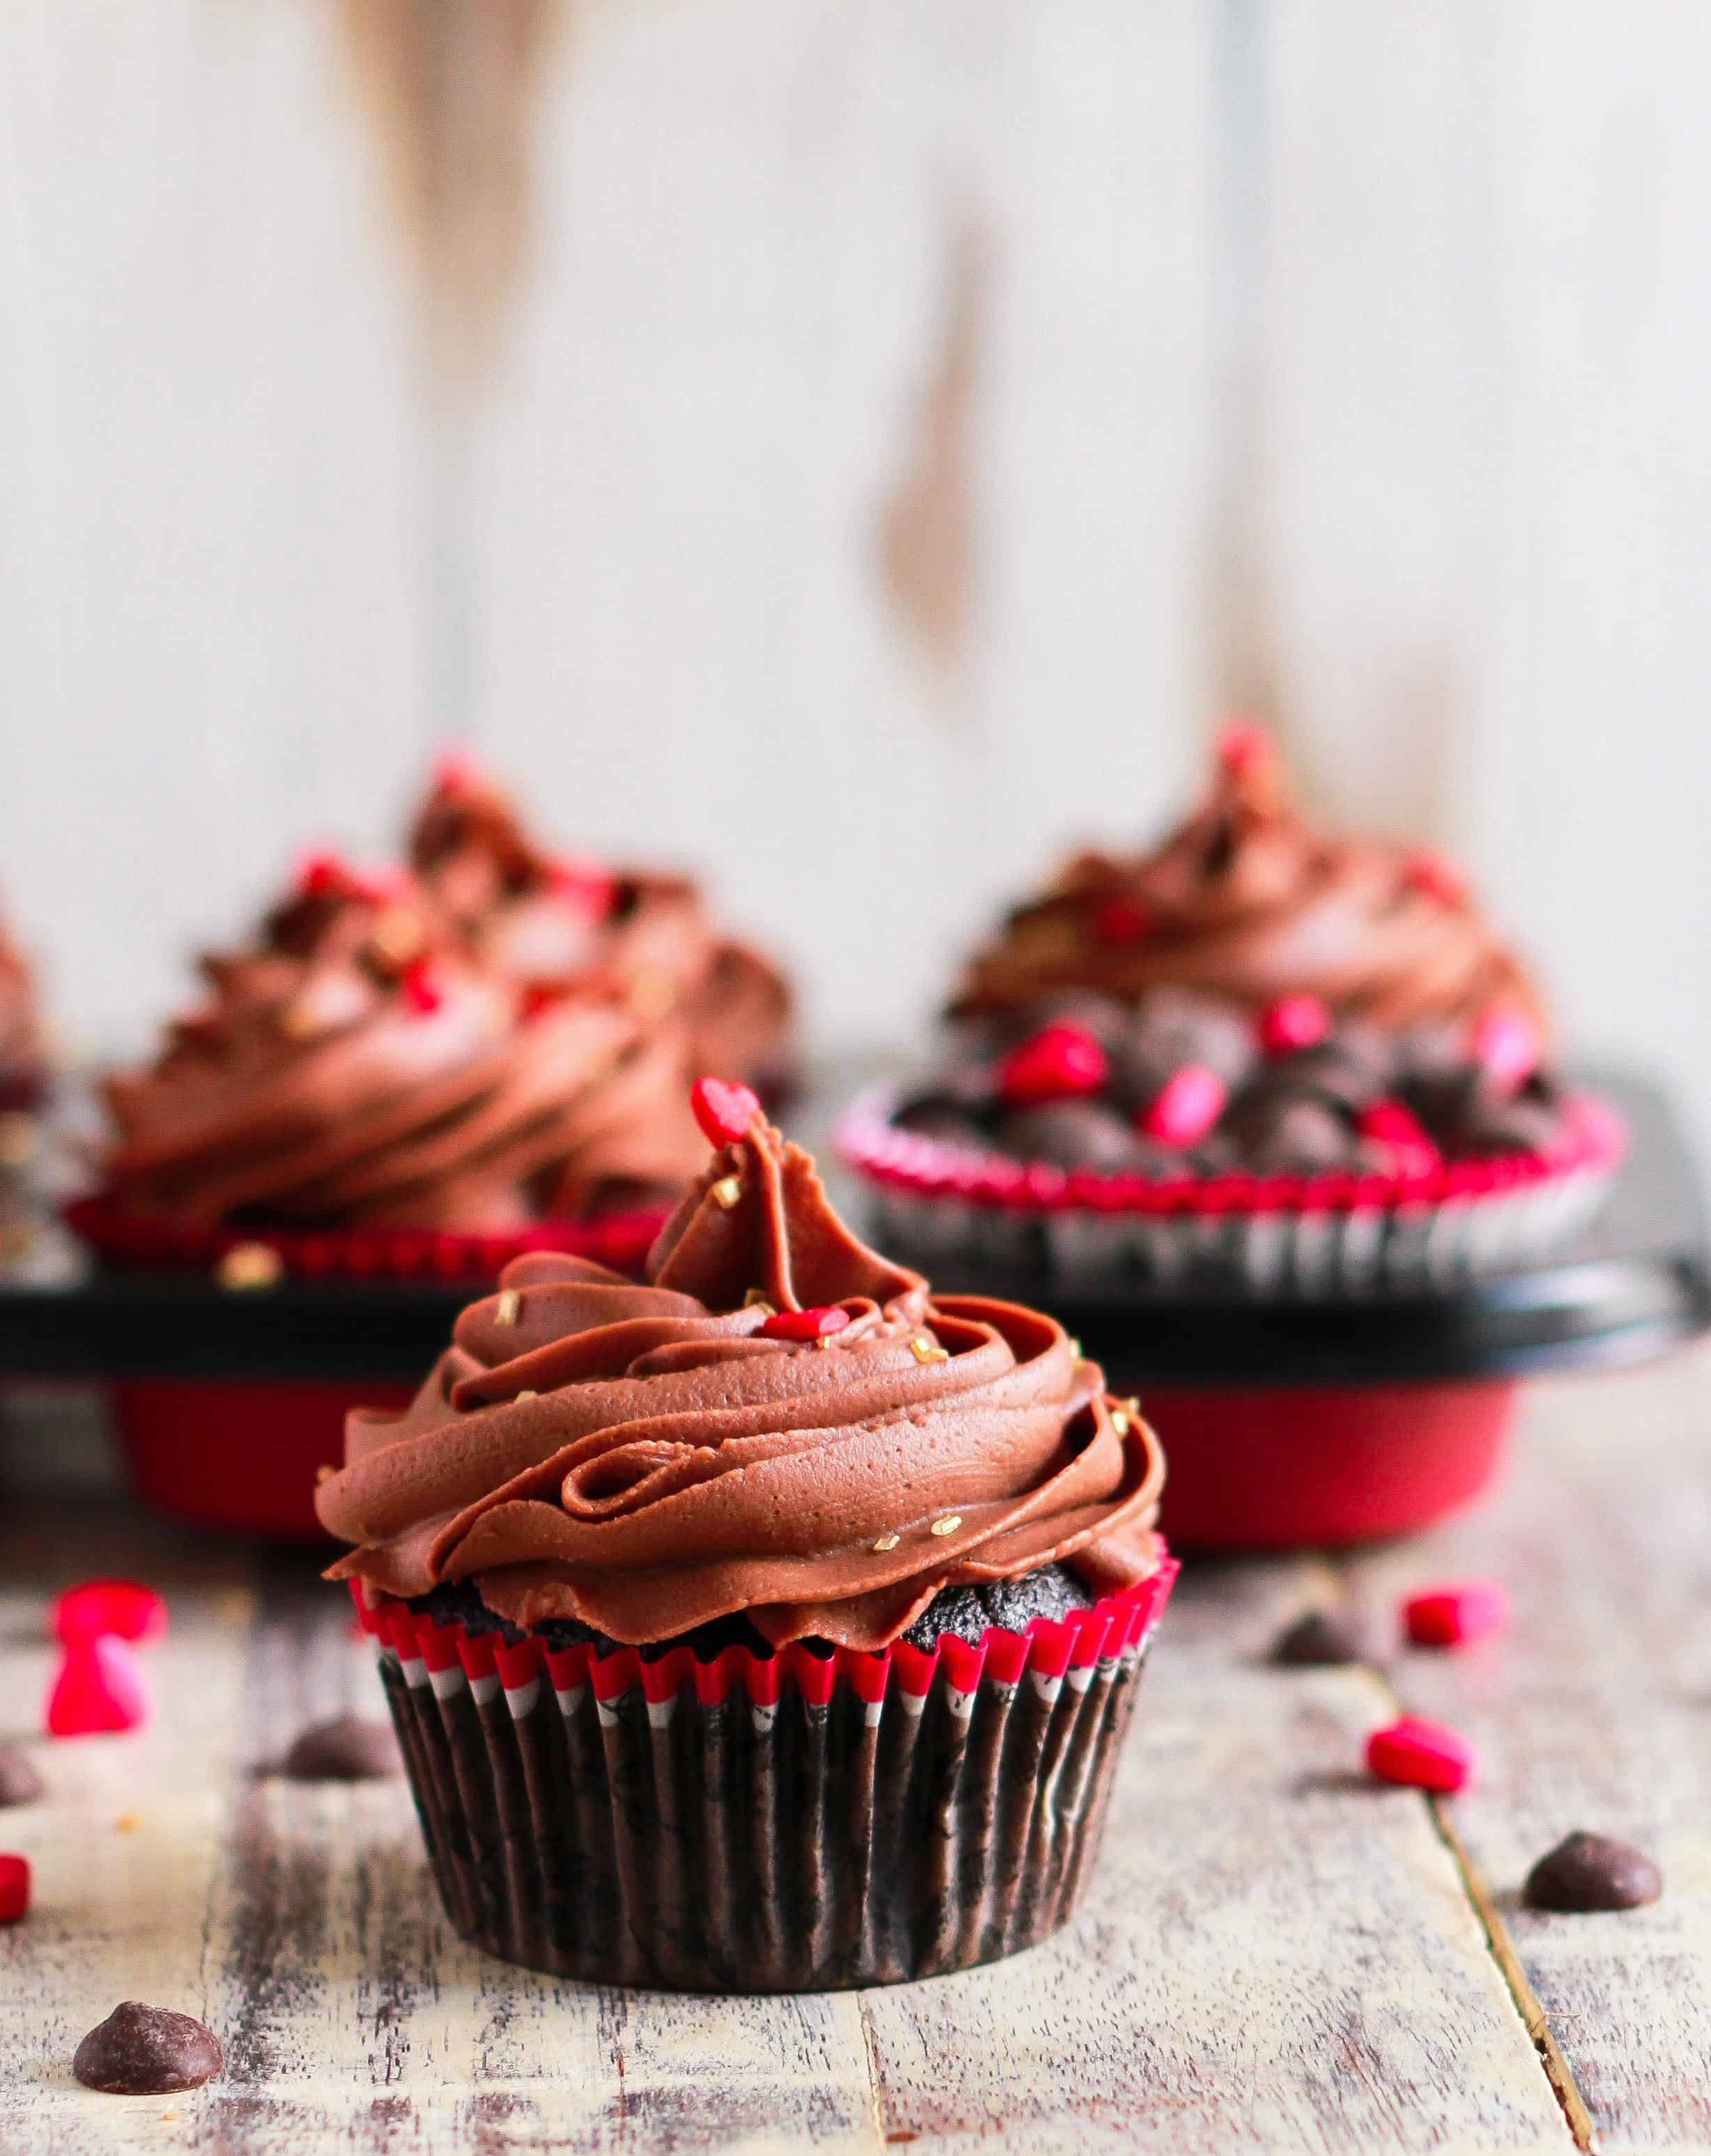 Mocha Cupcakes with Chocolate Cream Cheese Frosting